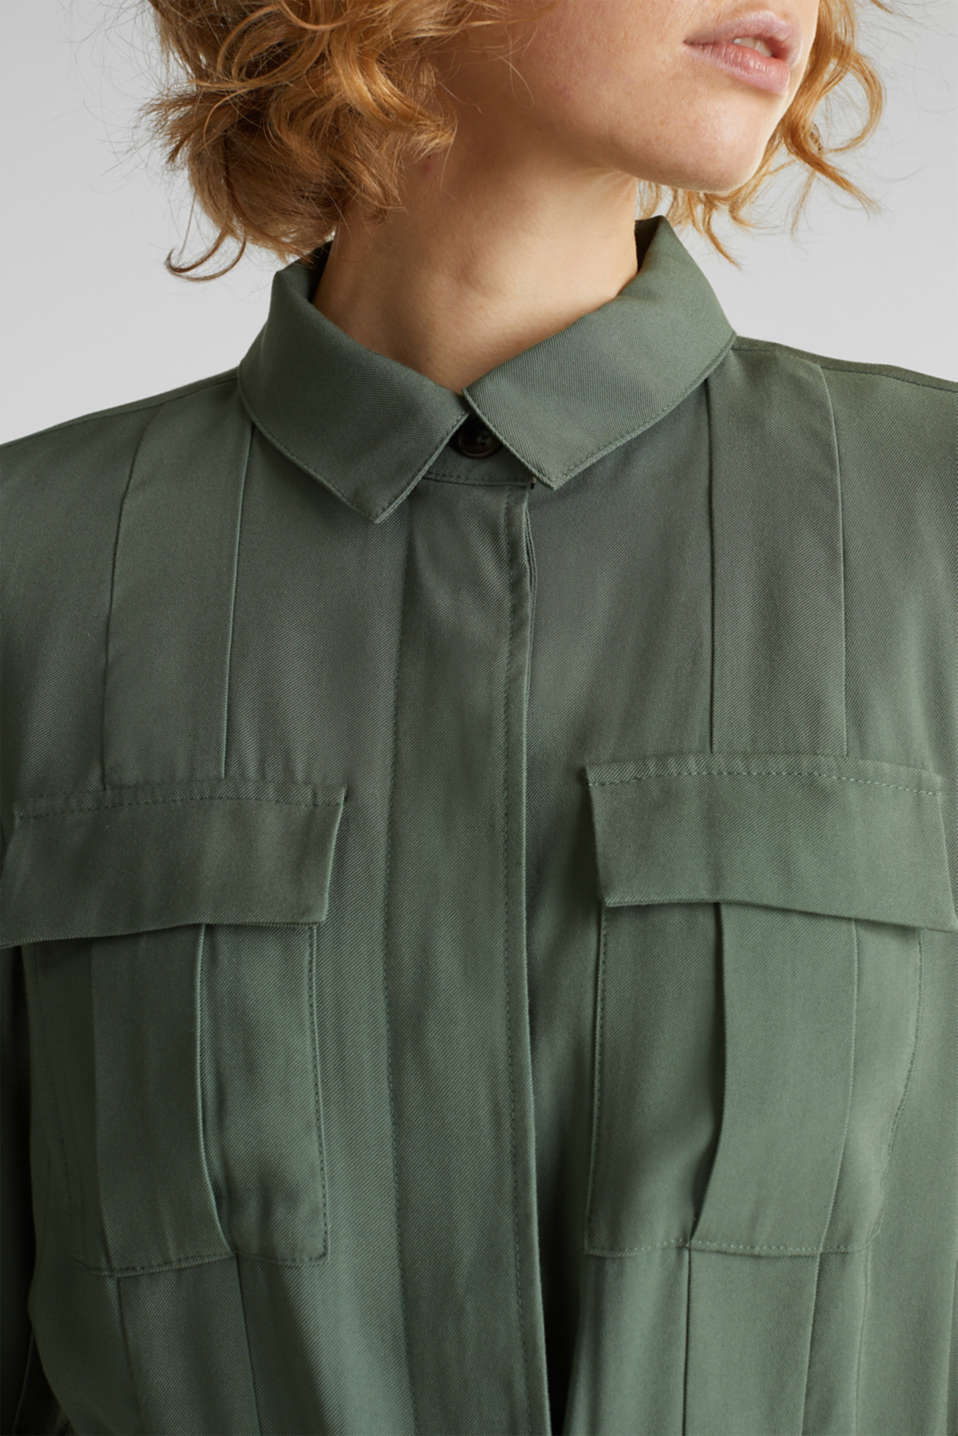 Utility-style shirt jacket, KHAKI GREEN, detail image number 2